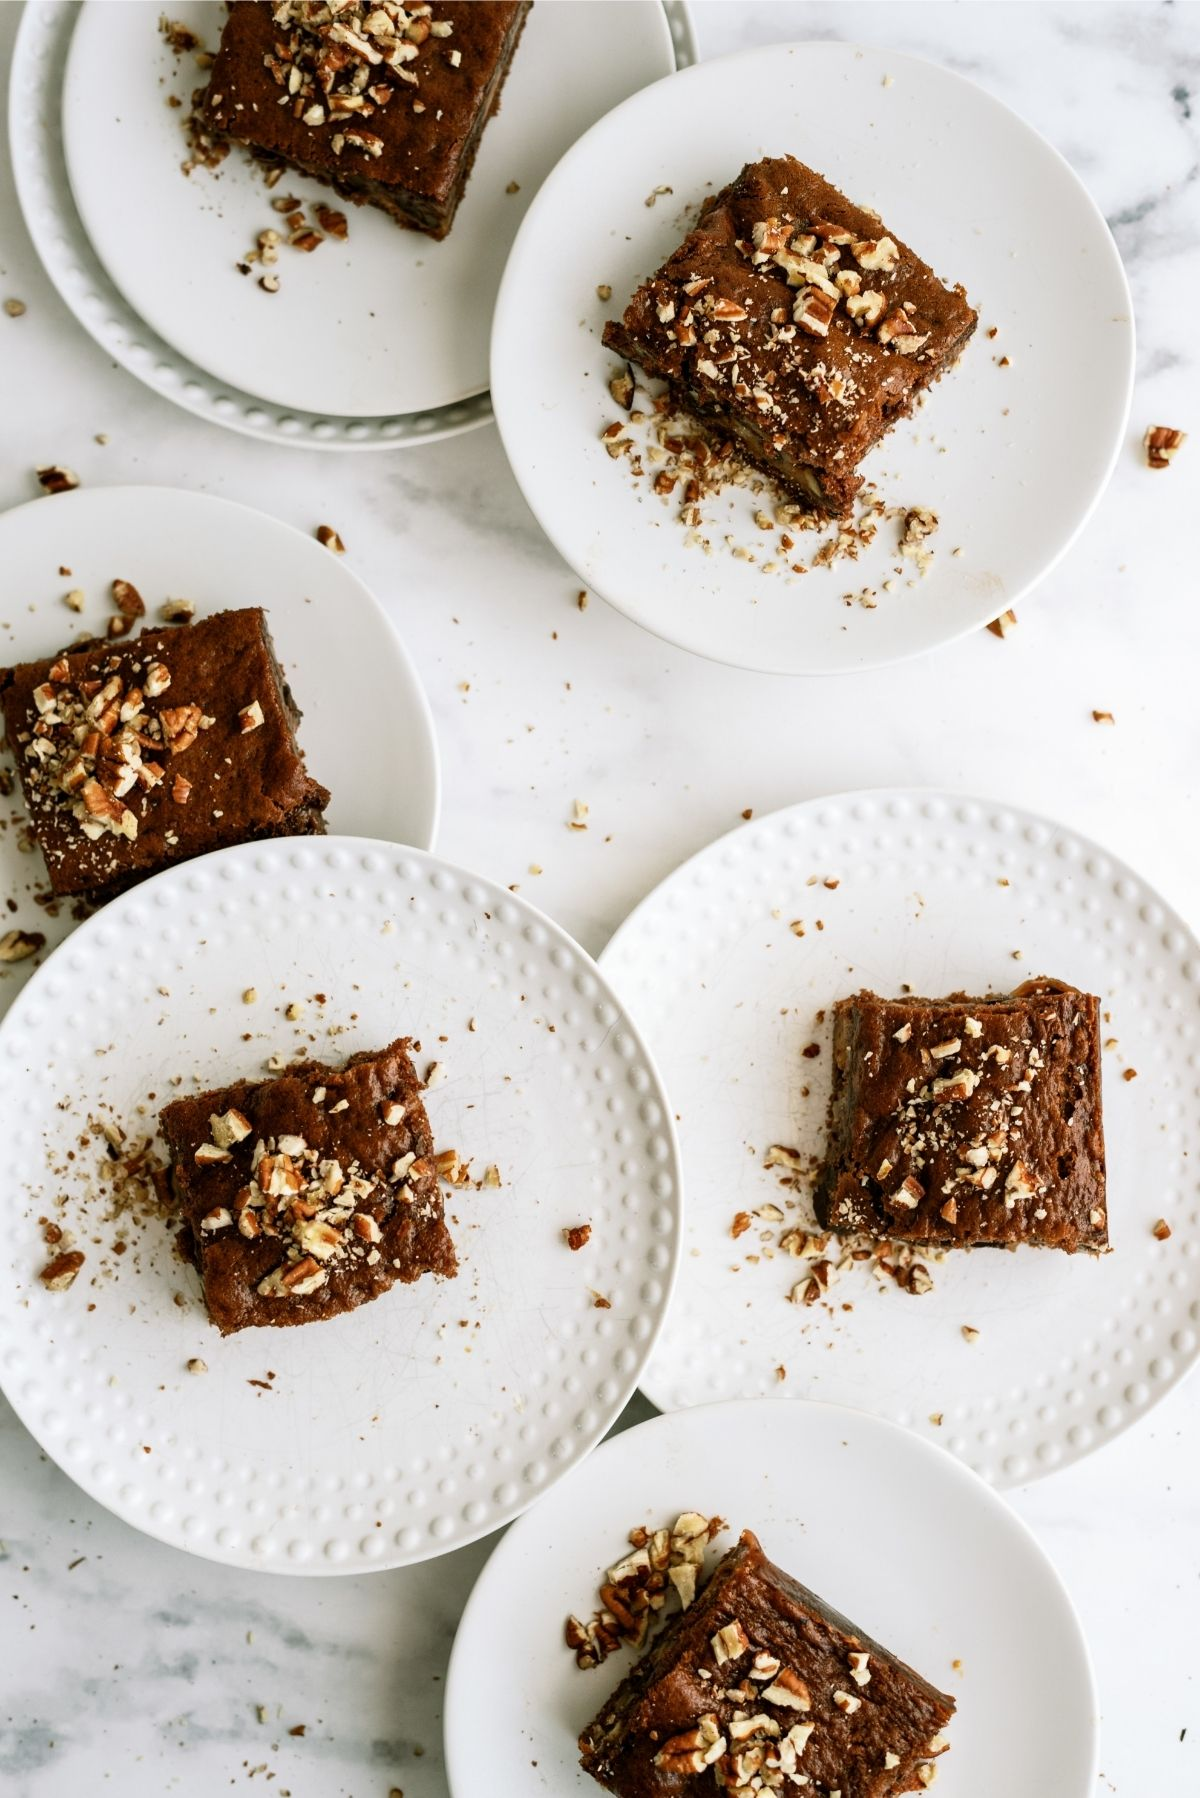 Snickers Cake sliced and served on white plates